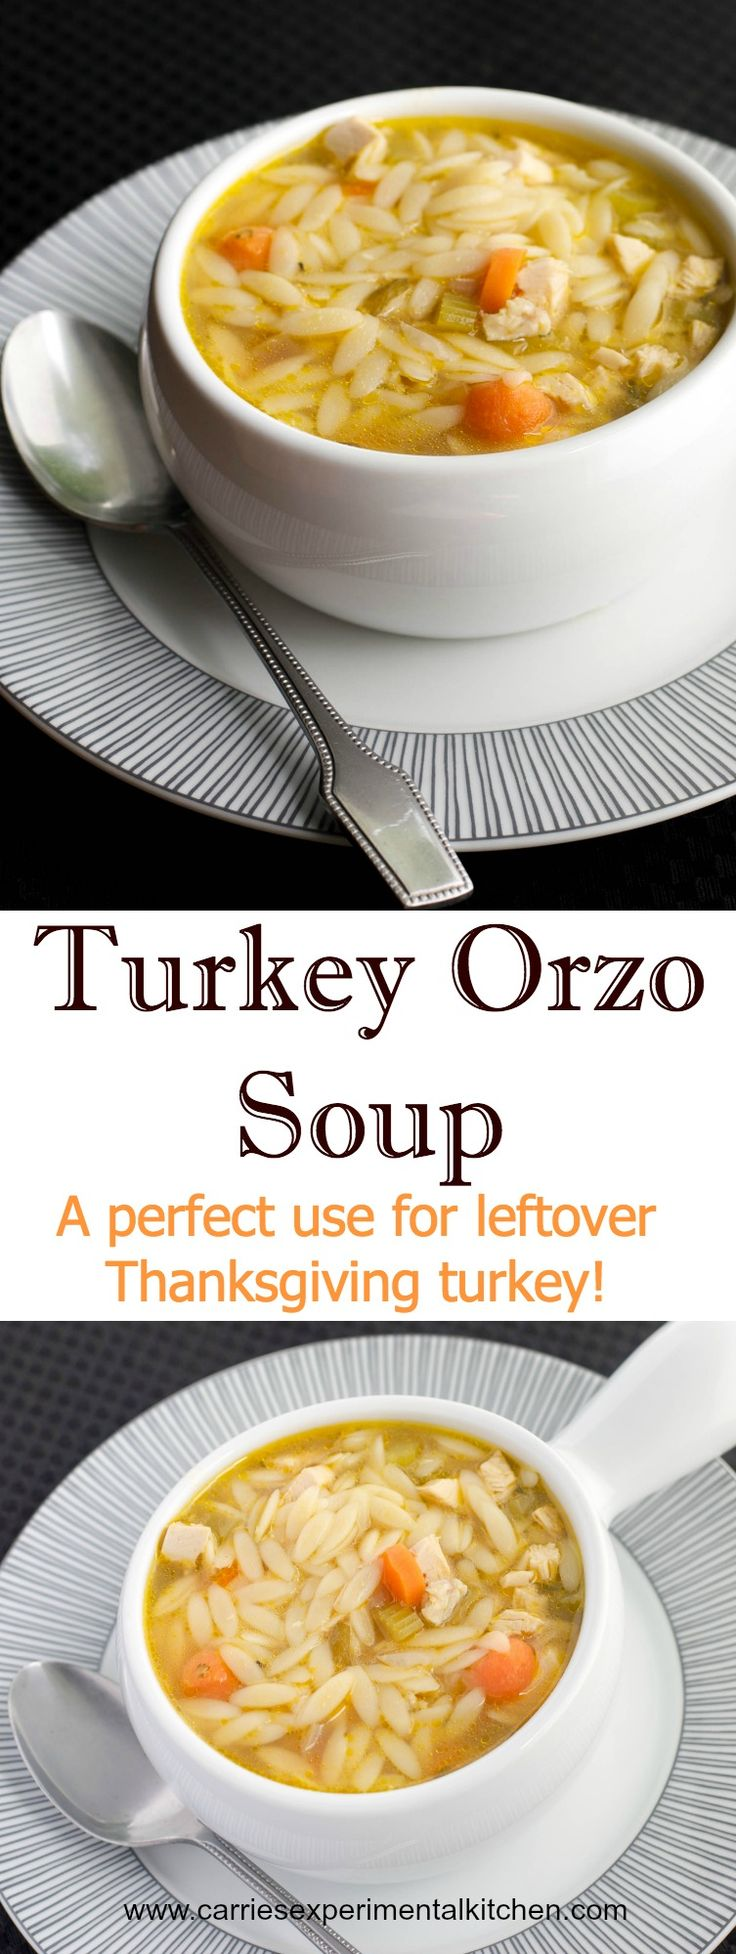 Turkey Orzo Soup - A perfect use for leftover Thanksgiving turkey.